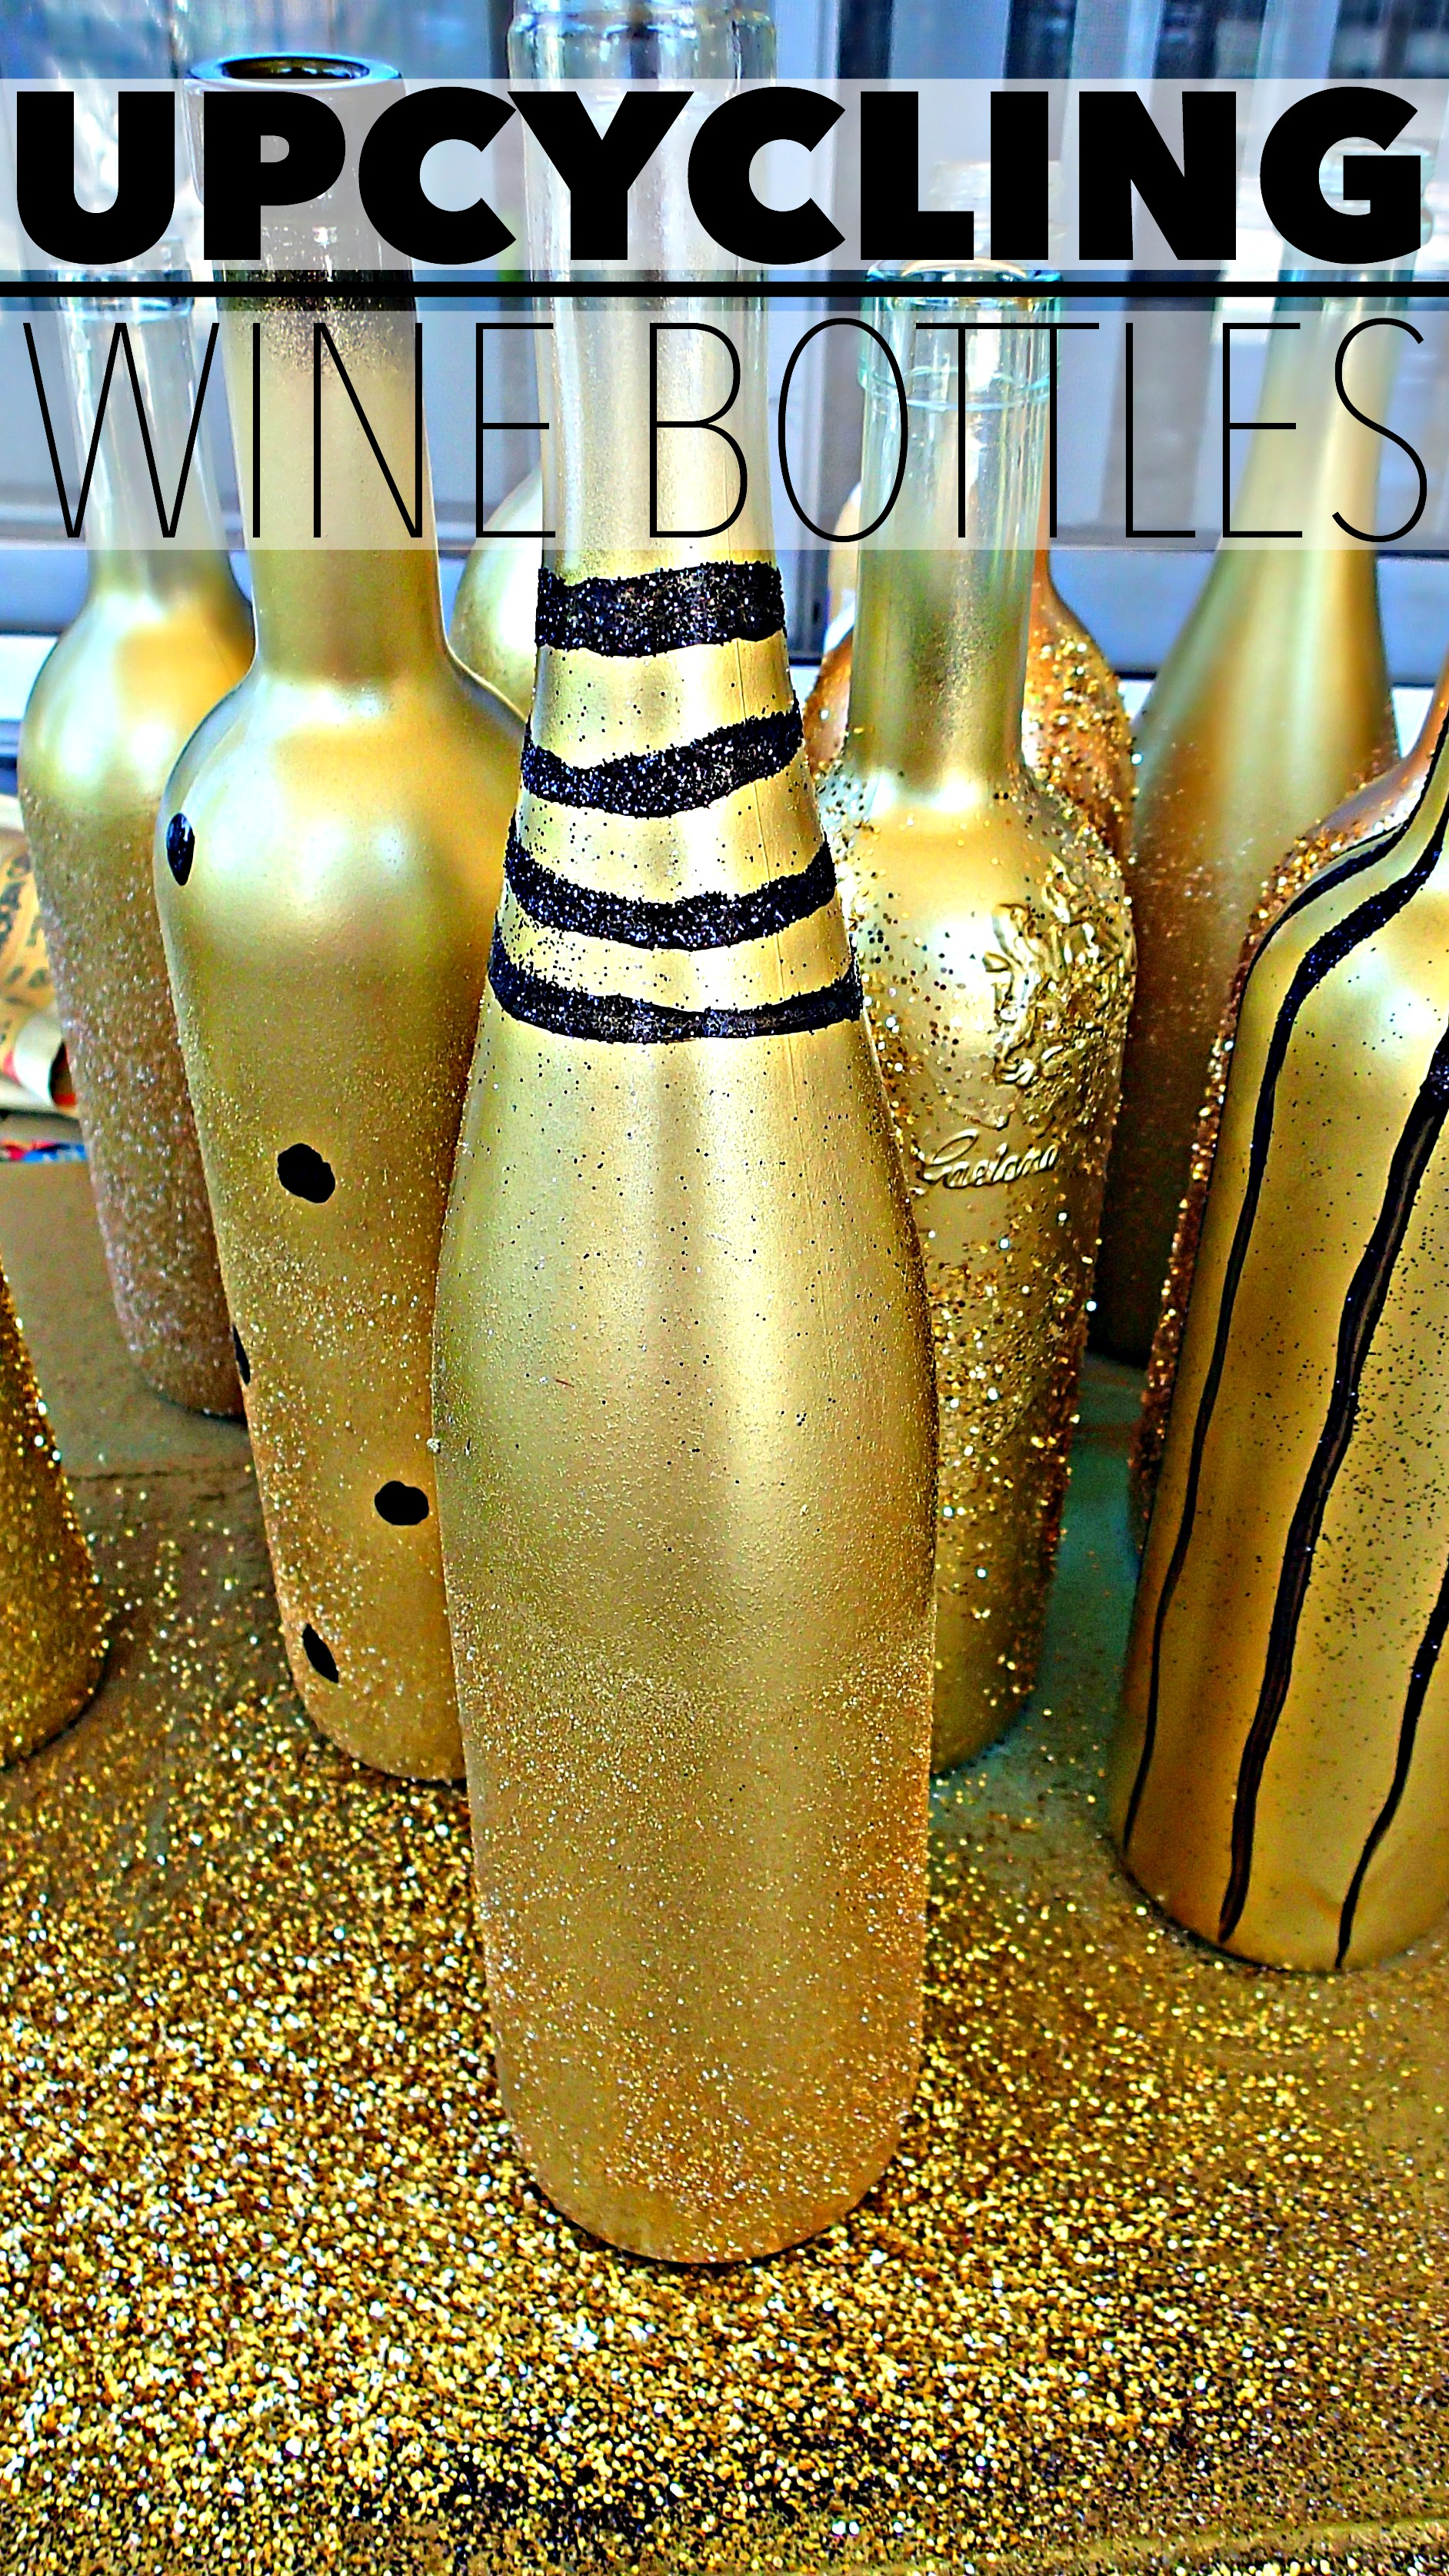 Diy upcycling wine bottles for decor simply taralynn for Diy projects with wine bottles